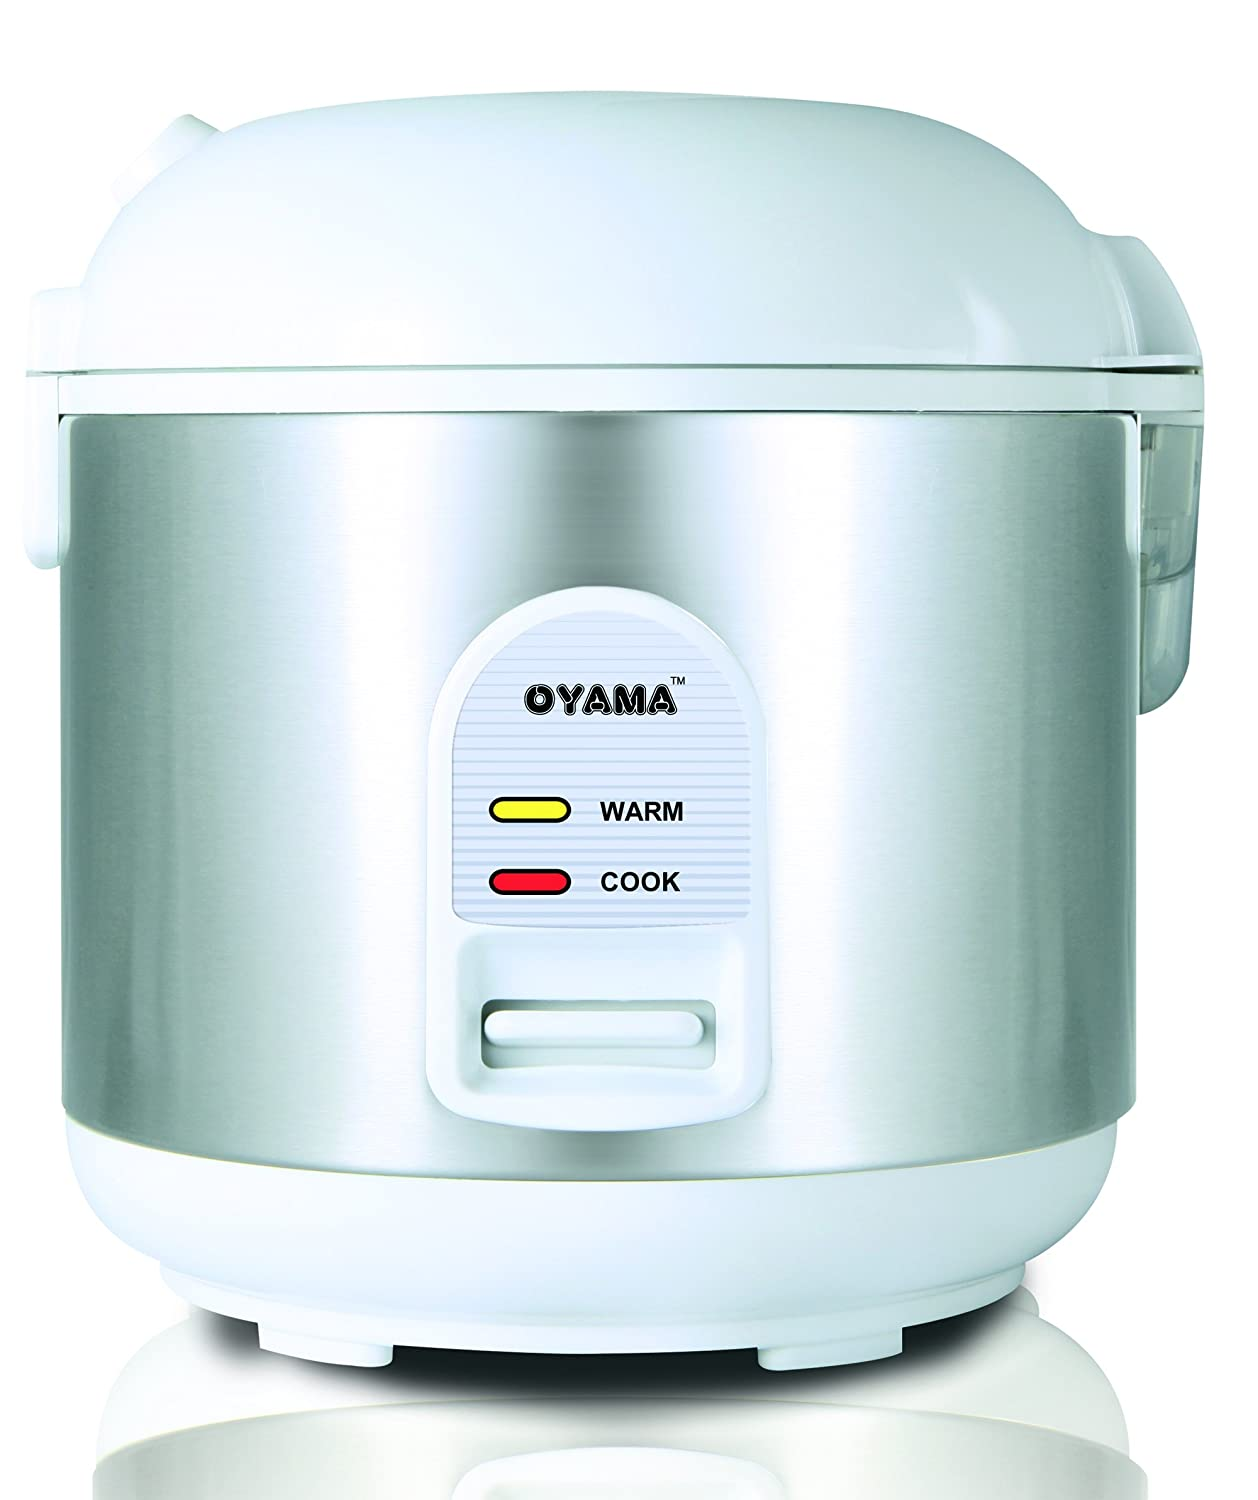 Oyama CFS-F10W 5 Cup Rice Cooker, Stainless White